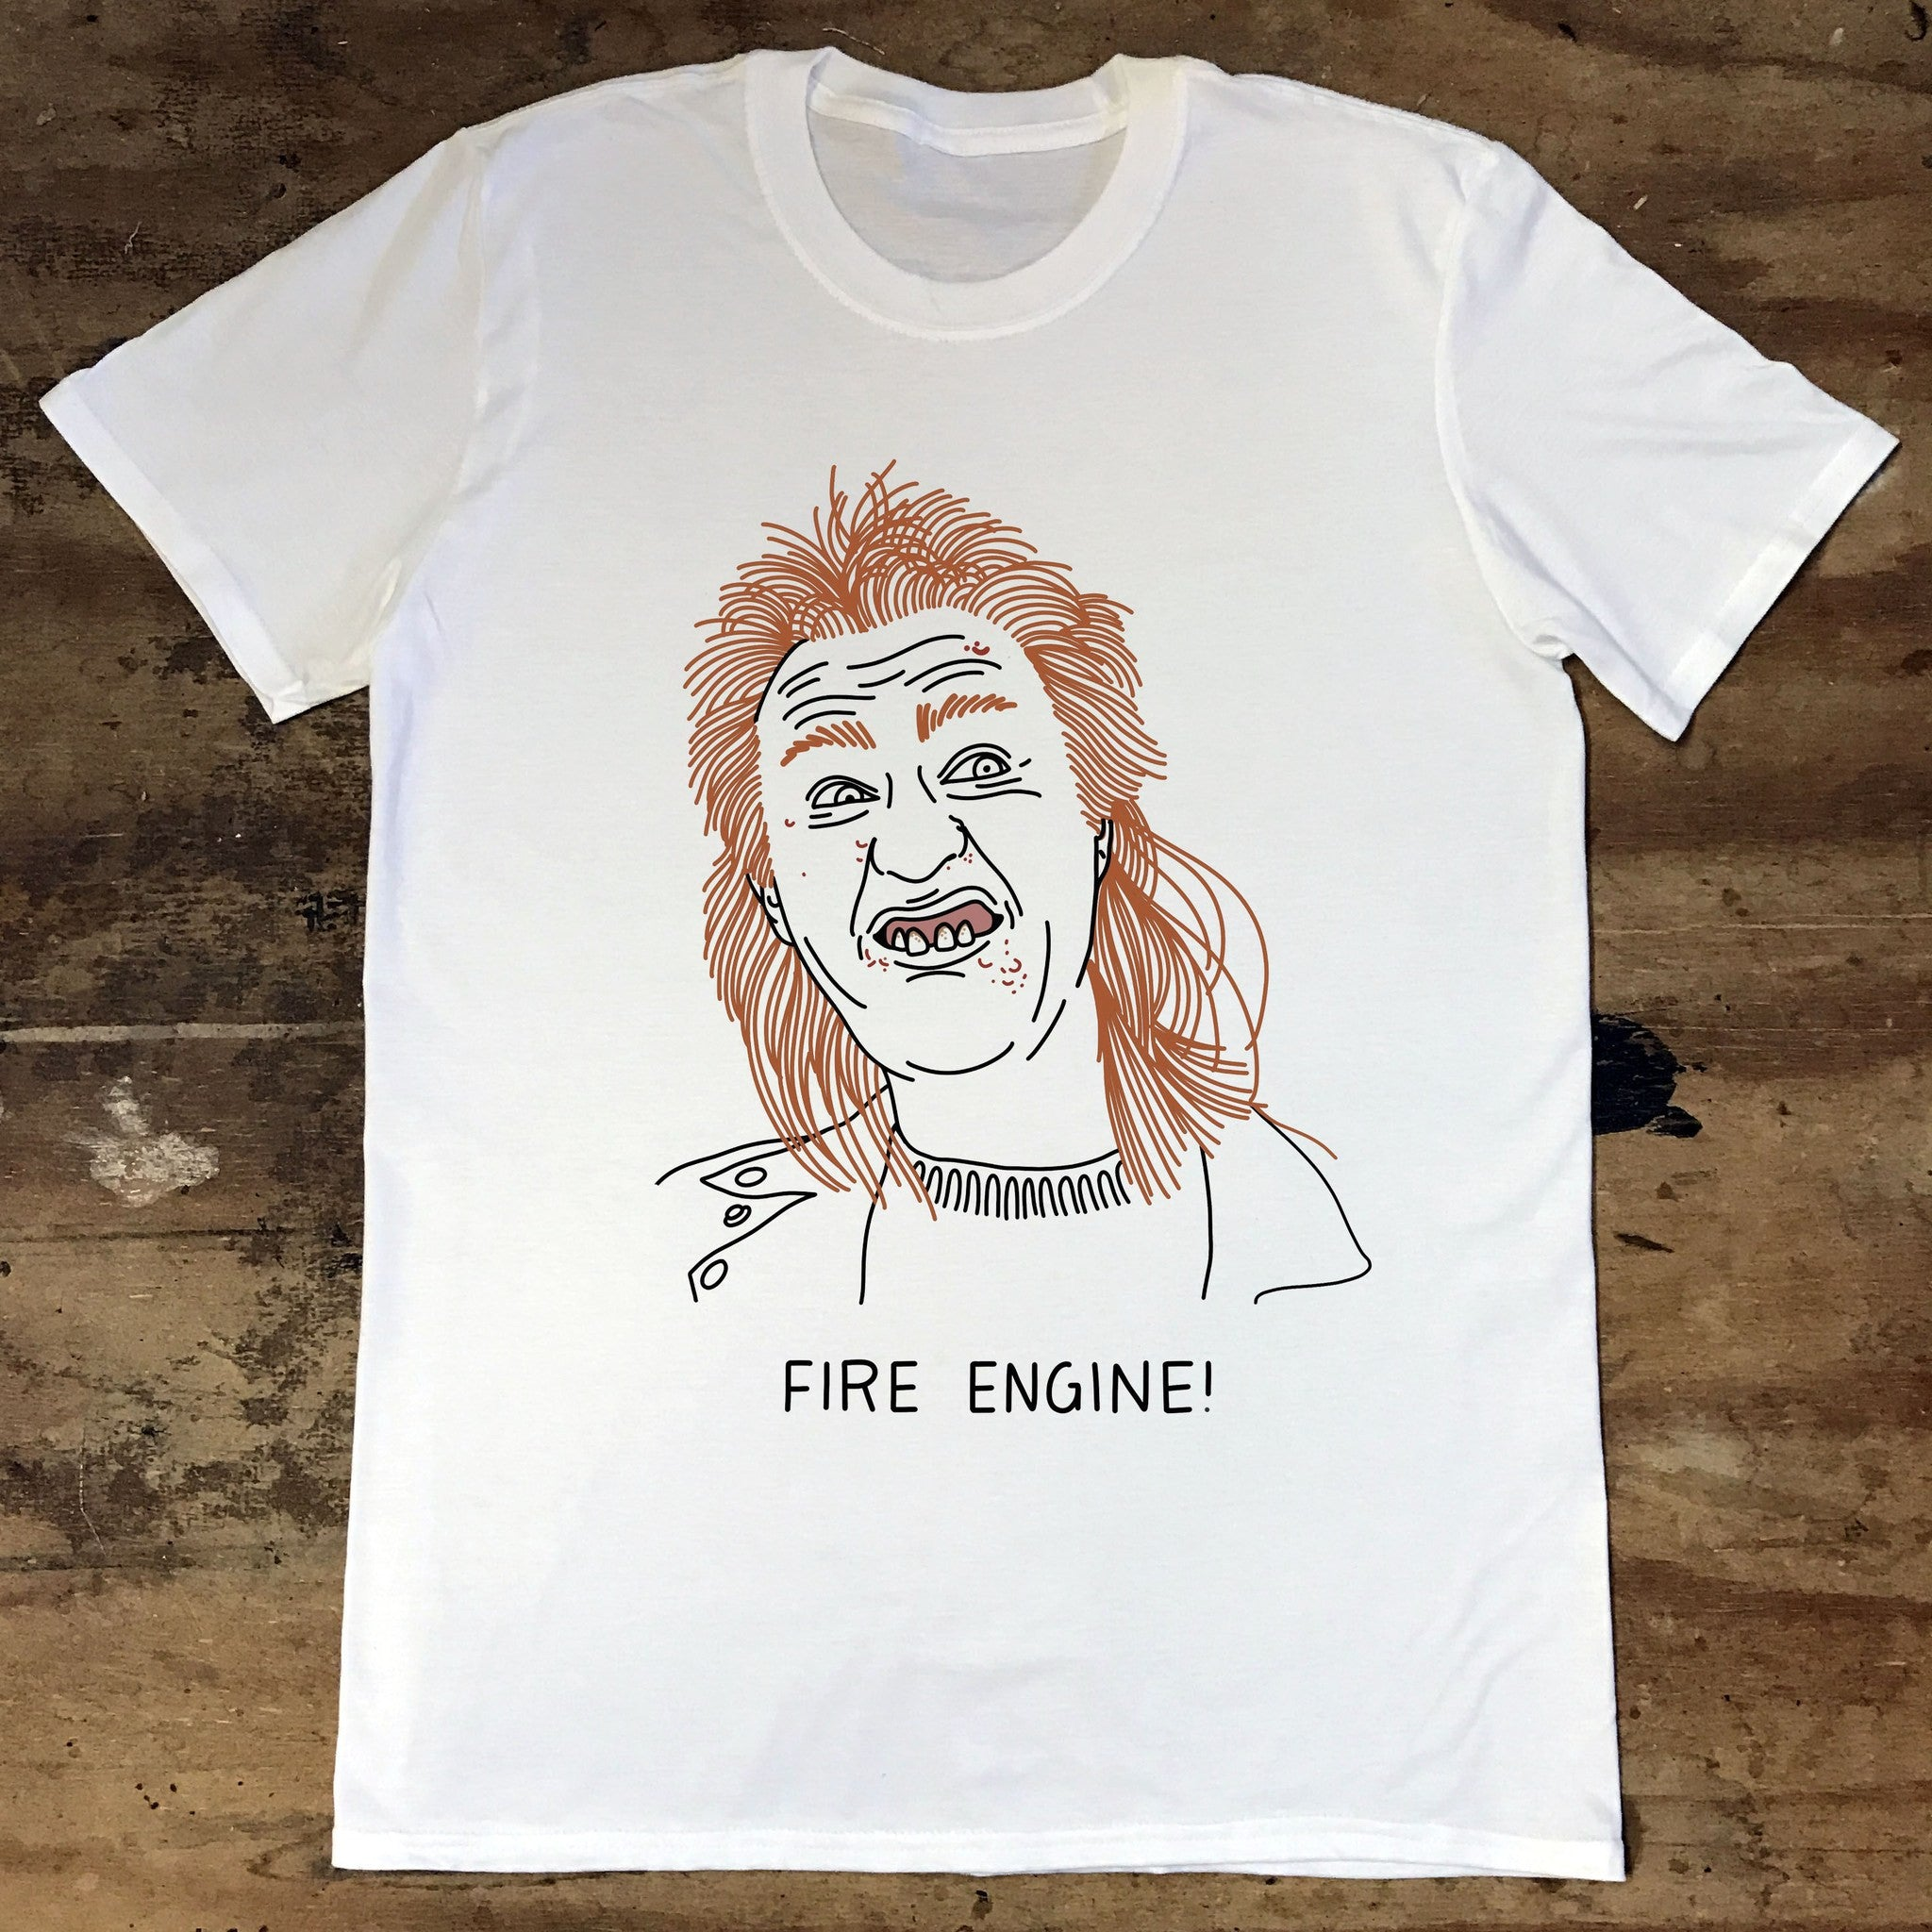 League of Gentlemen - Mickey - Fire Engine - Jiggle Apparel